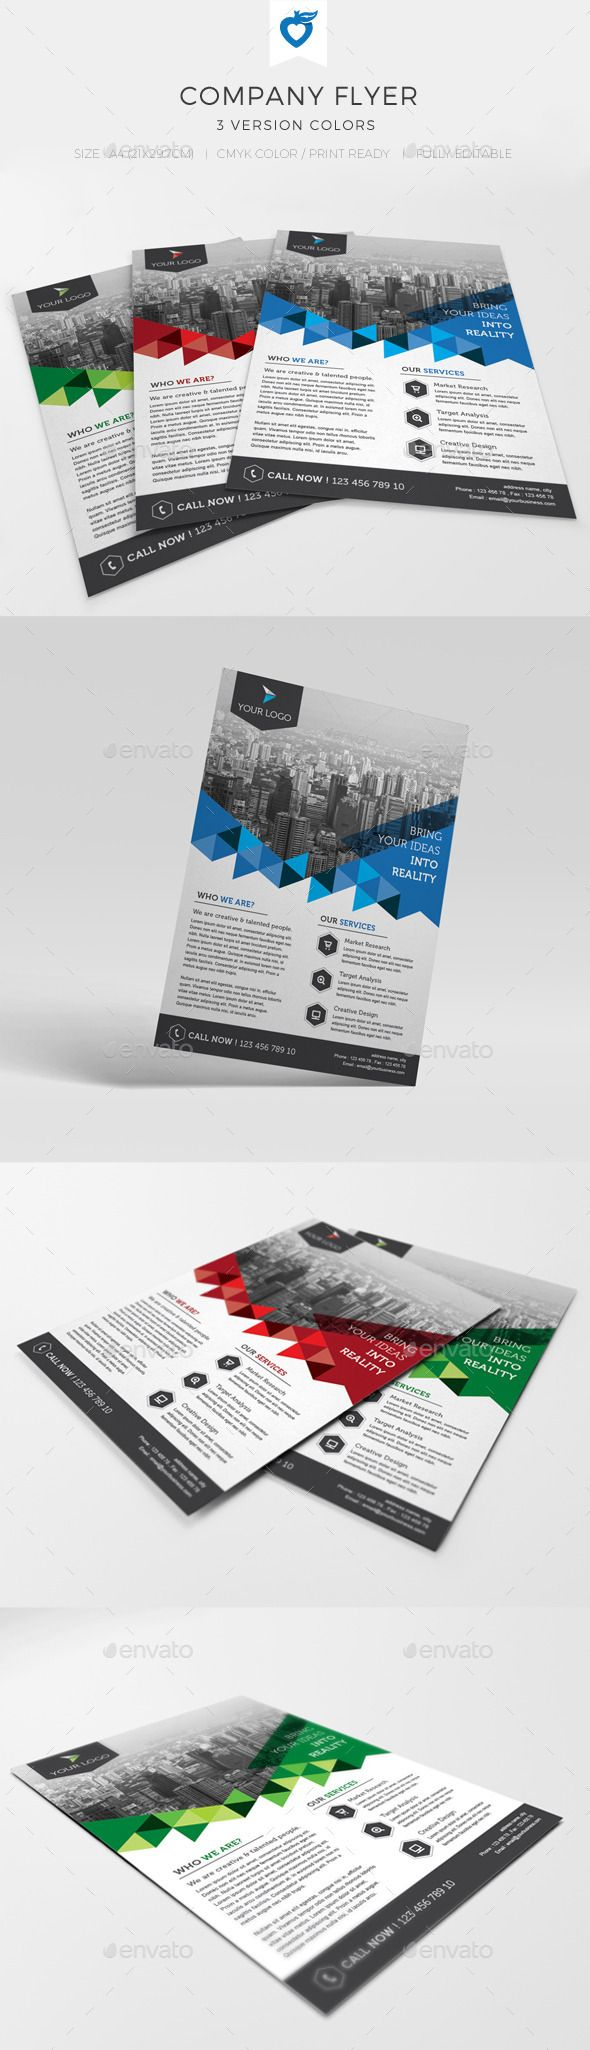 company flyer flyer template brochures and business flyers